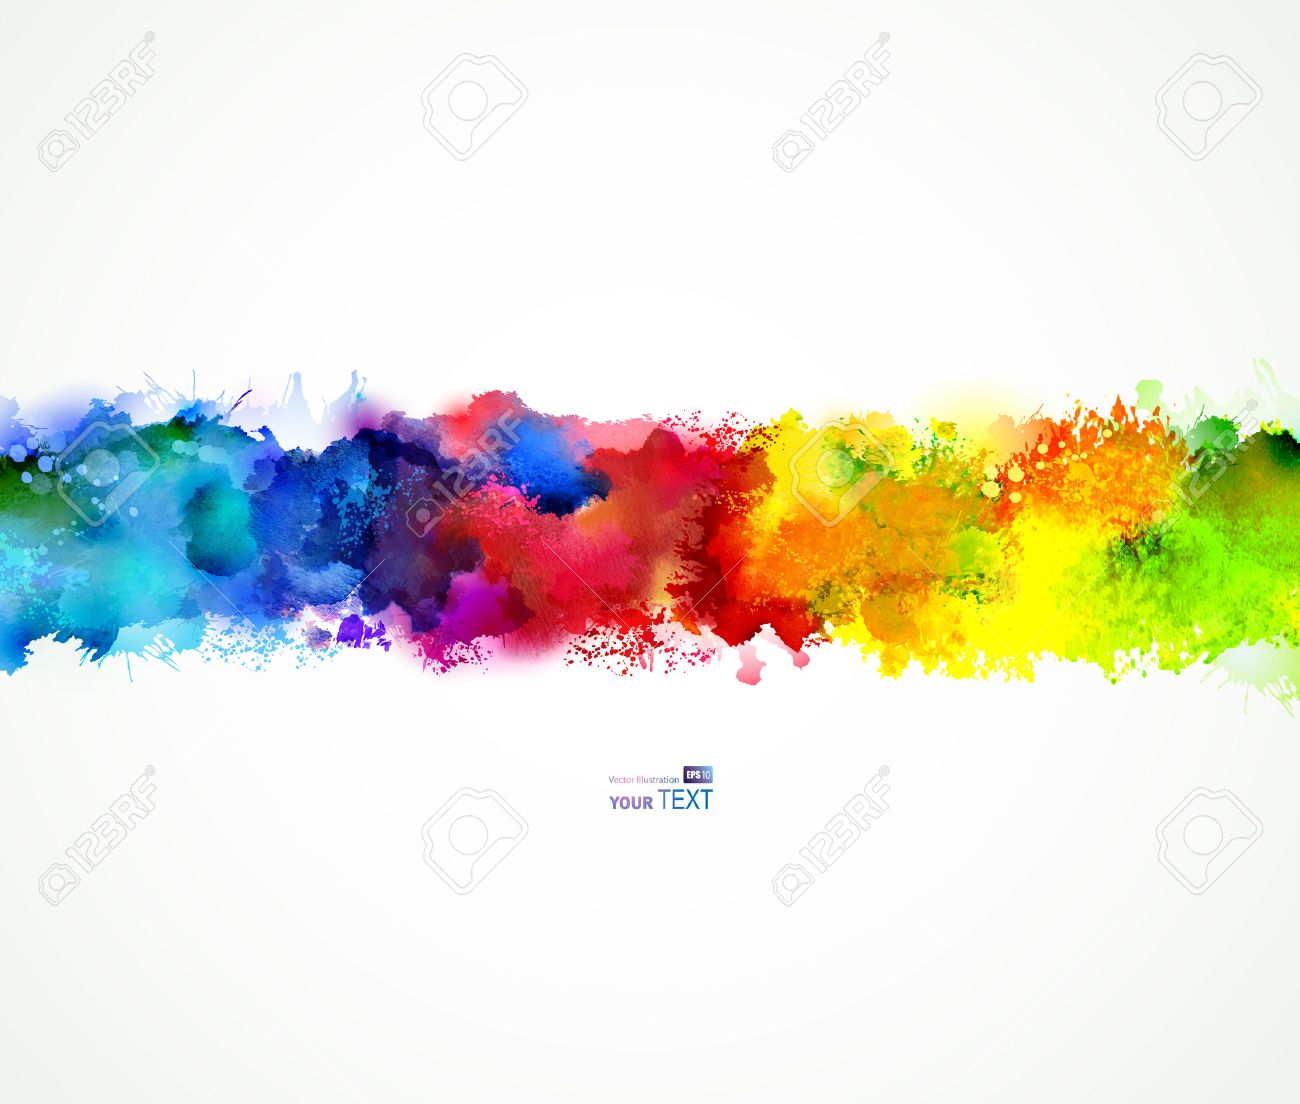 Bright watercolor stains. Rainbow blend. Stock Vector - 36224895